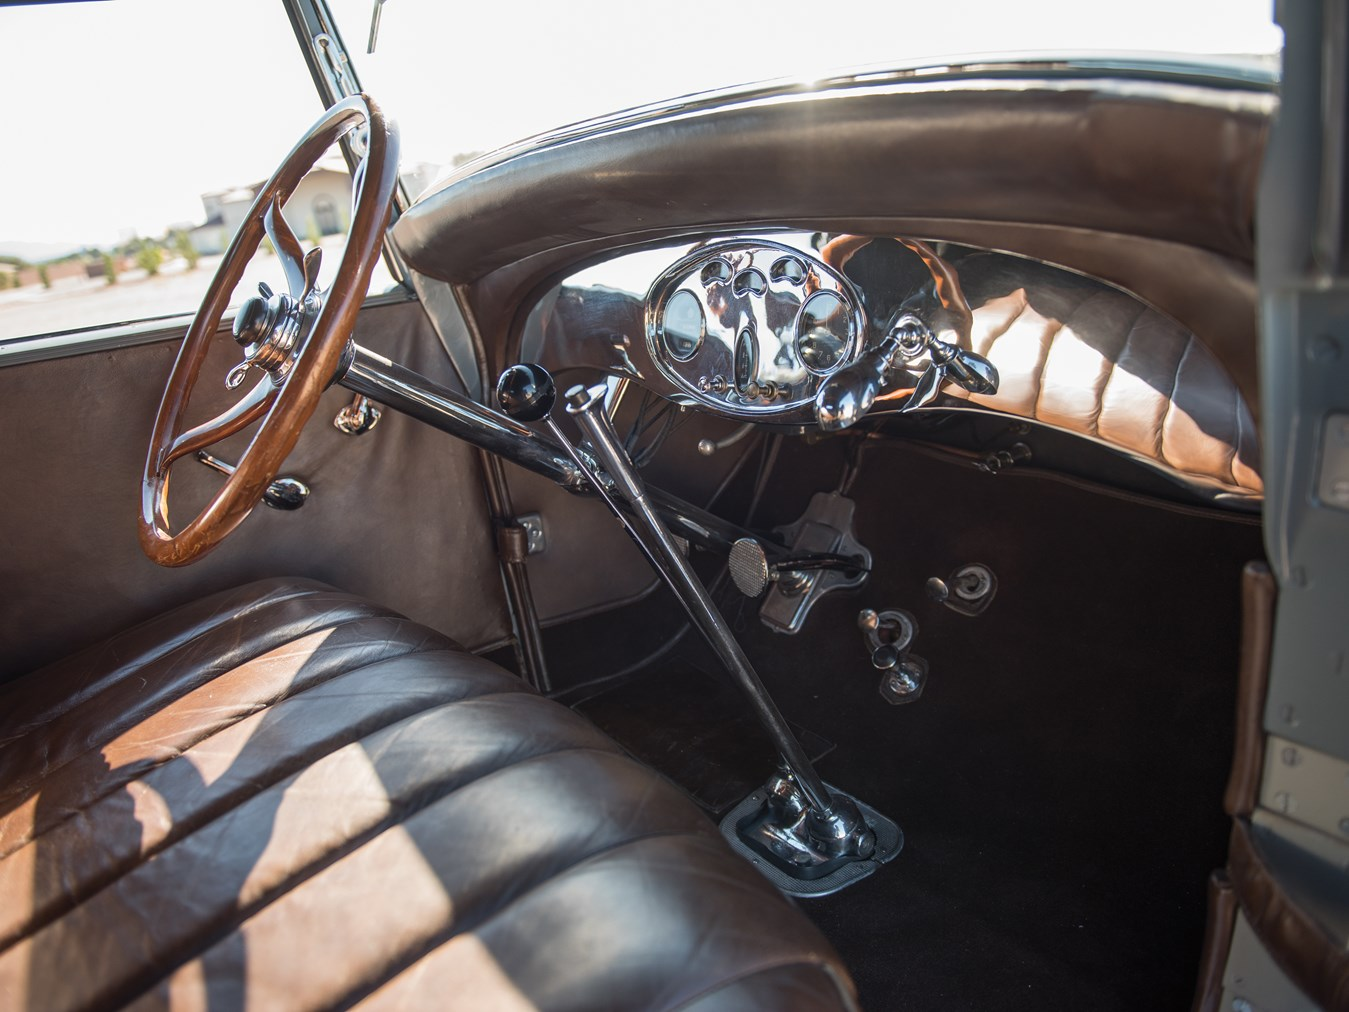 The Lincoln interior is of best quality but very similar in design to the Ford V-8.